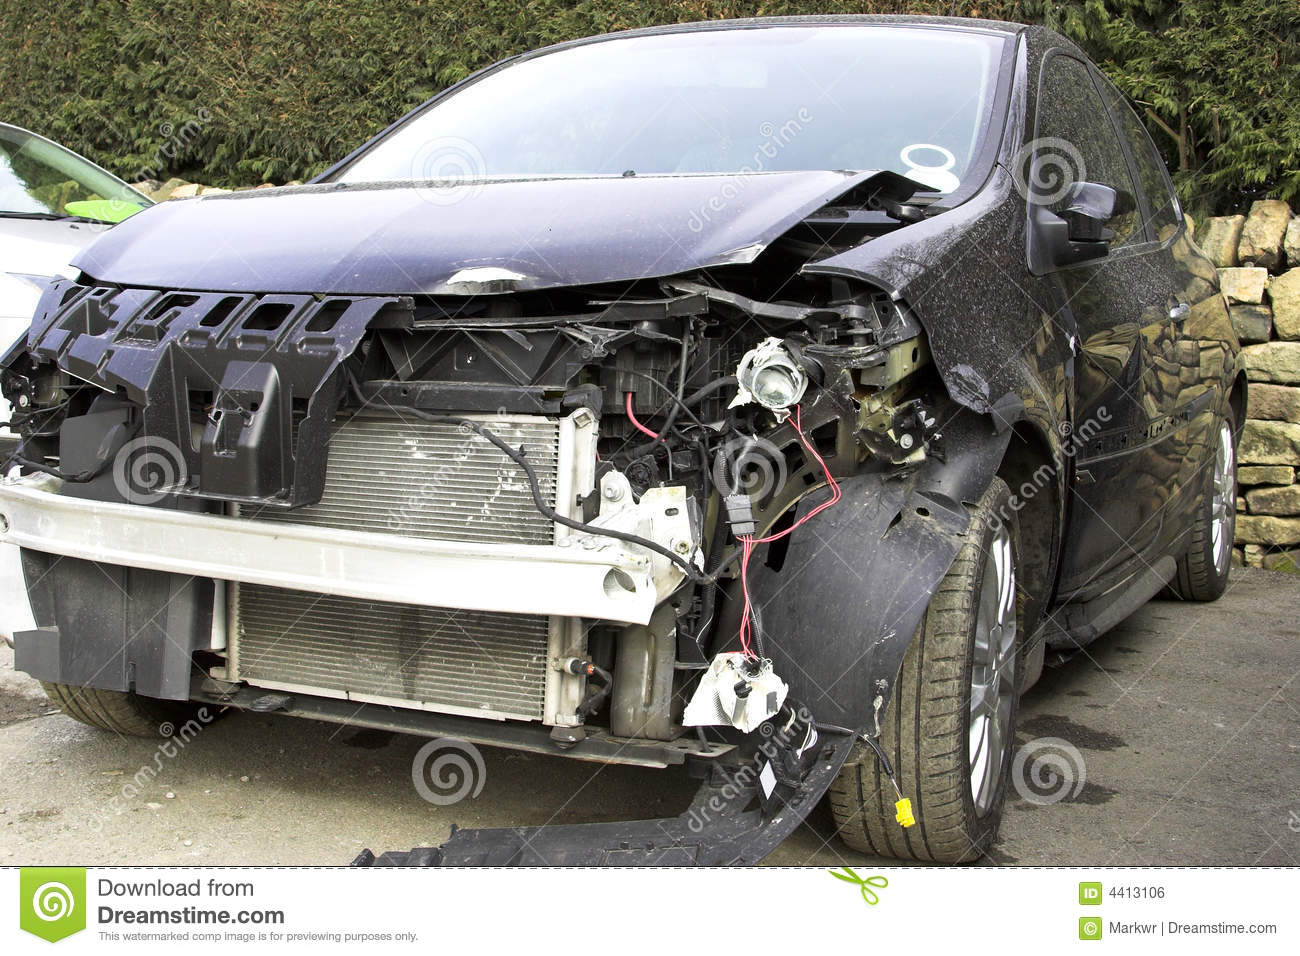 Accident Damaged Vehicle stock photo. Image of fast, bumper - 4413106